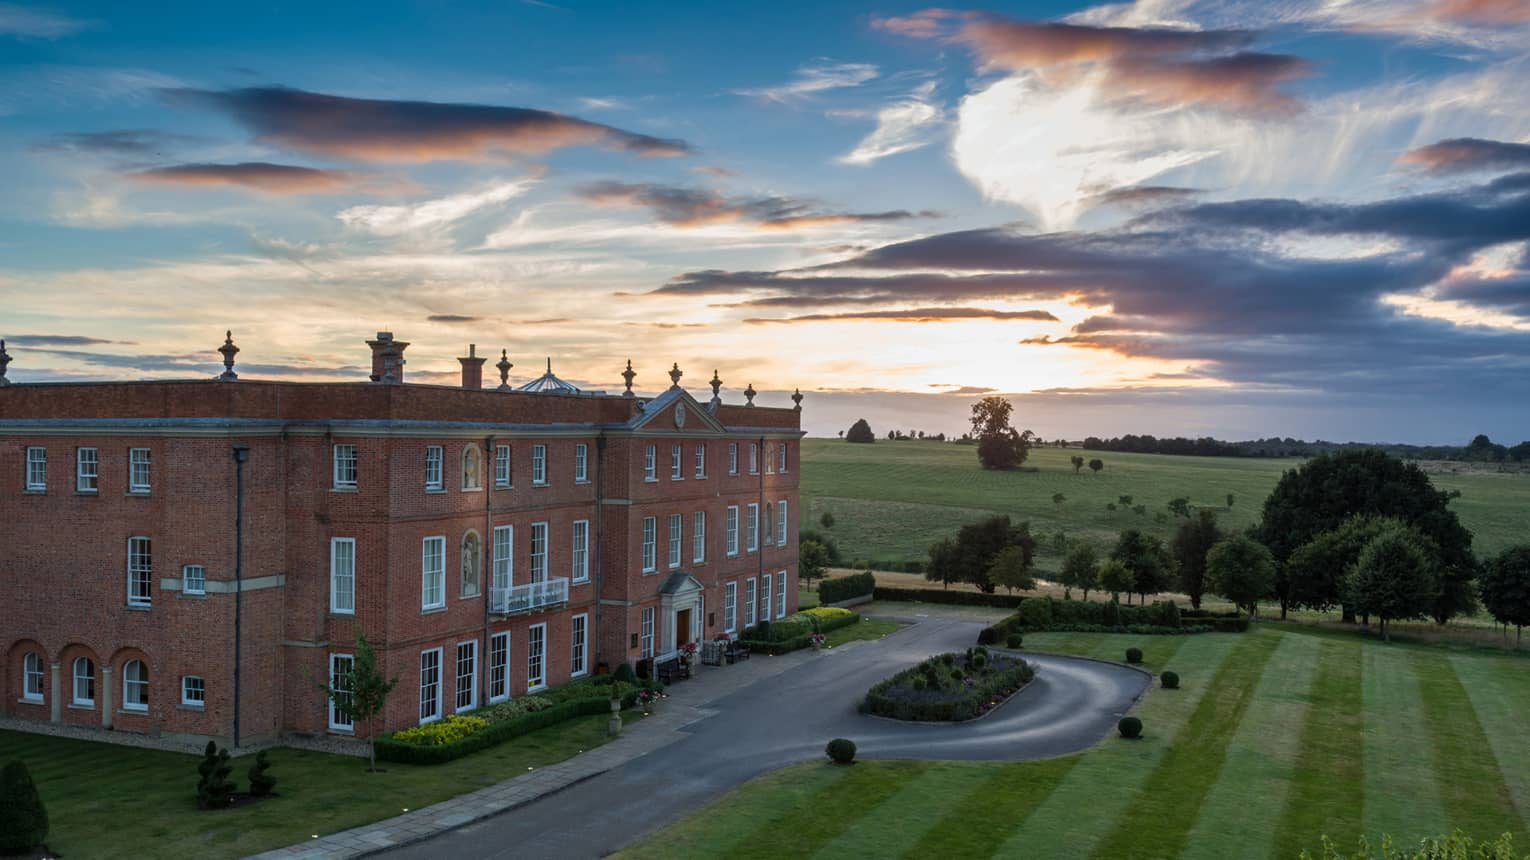 View over historic manor hotel building by rolling green fields at sunset